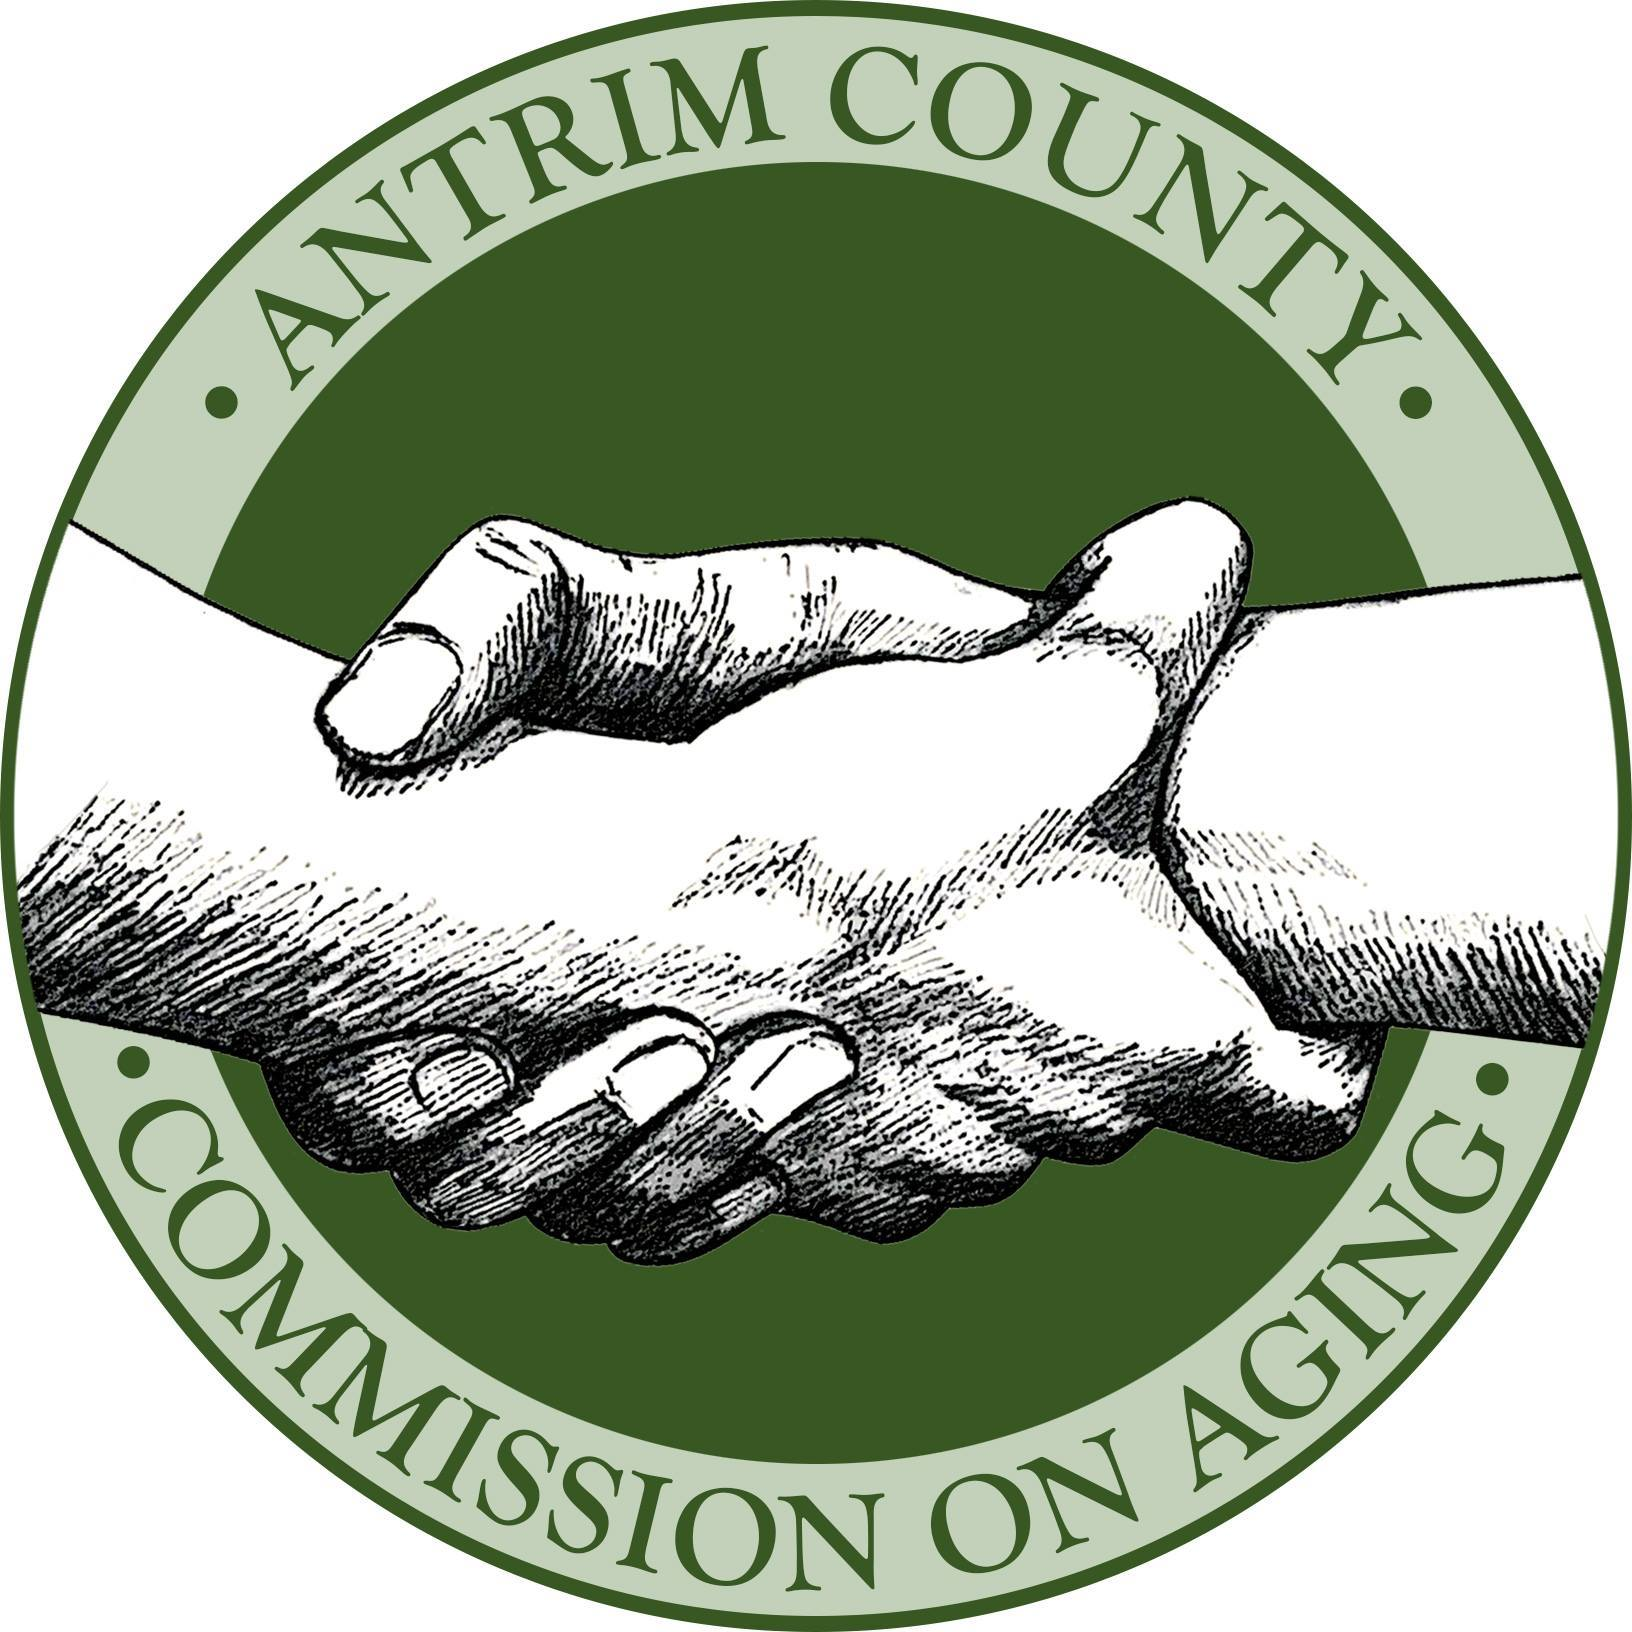 Antrim County Commission on Aging